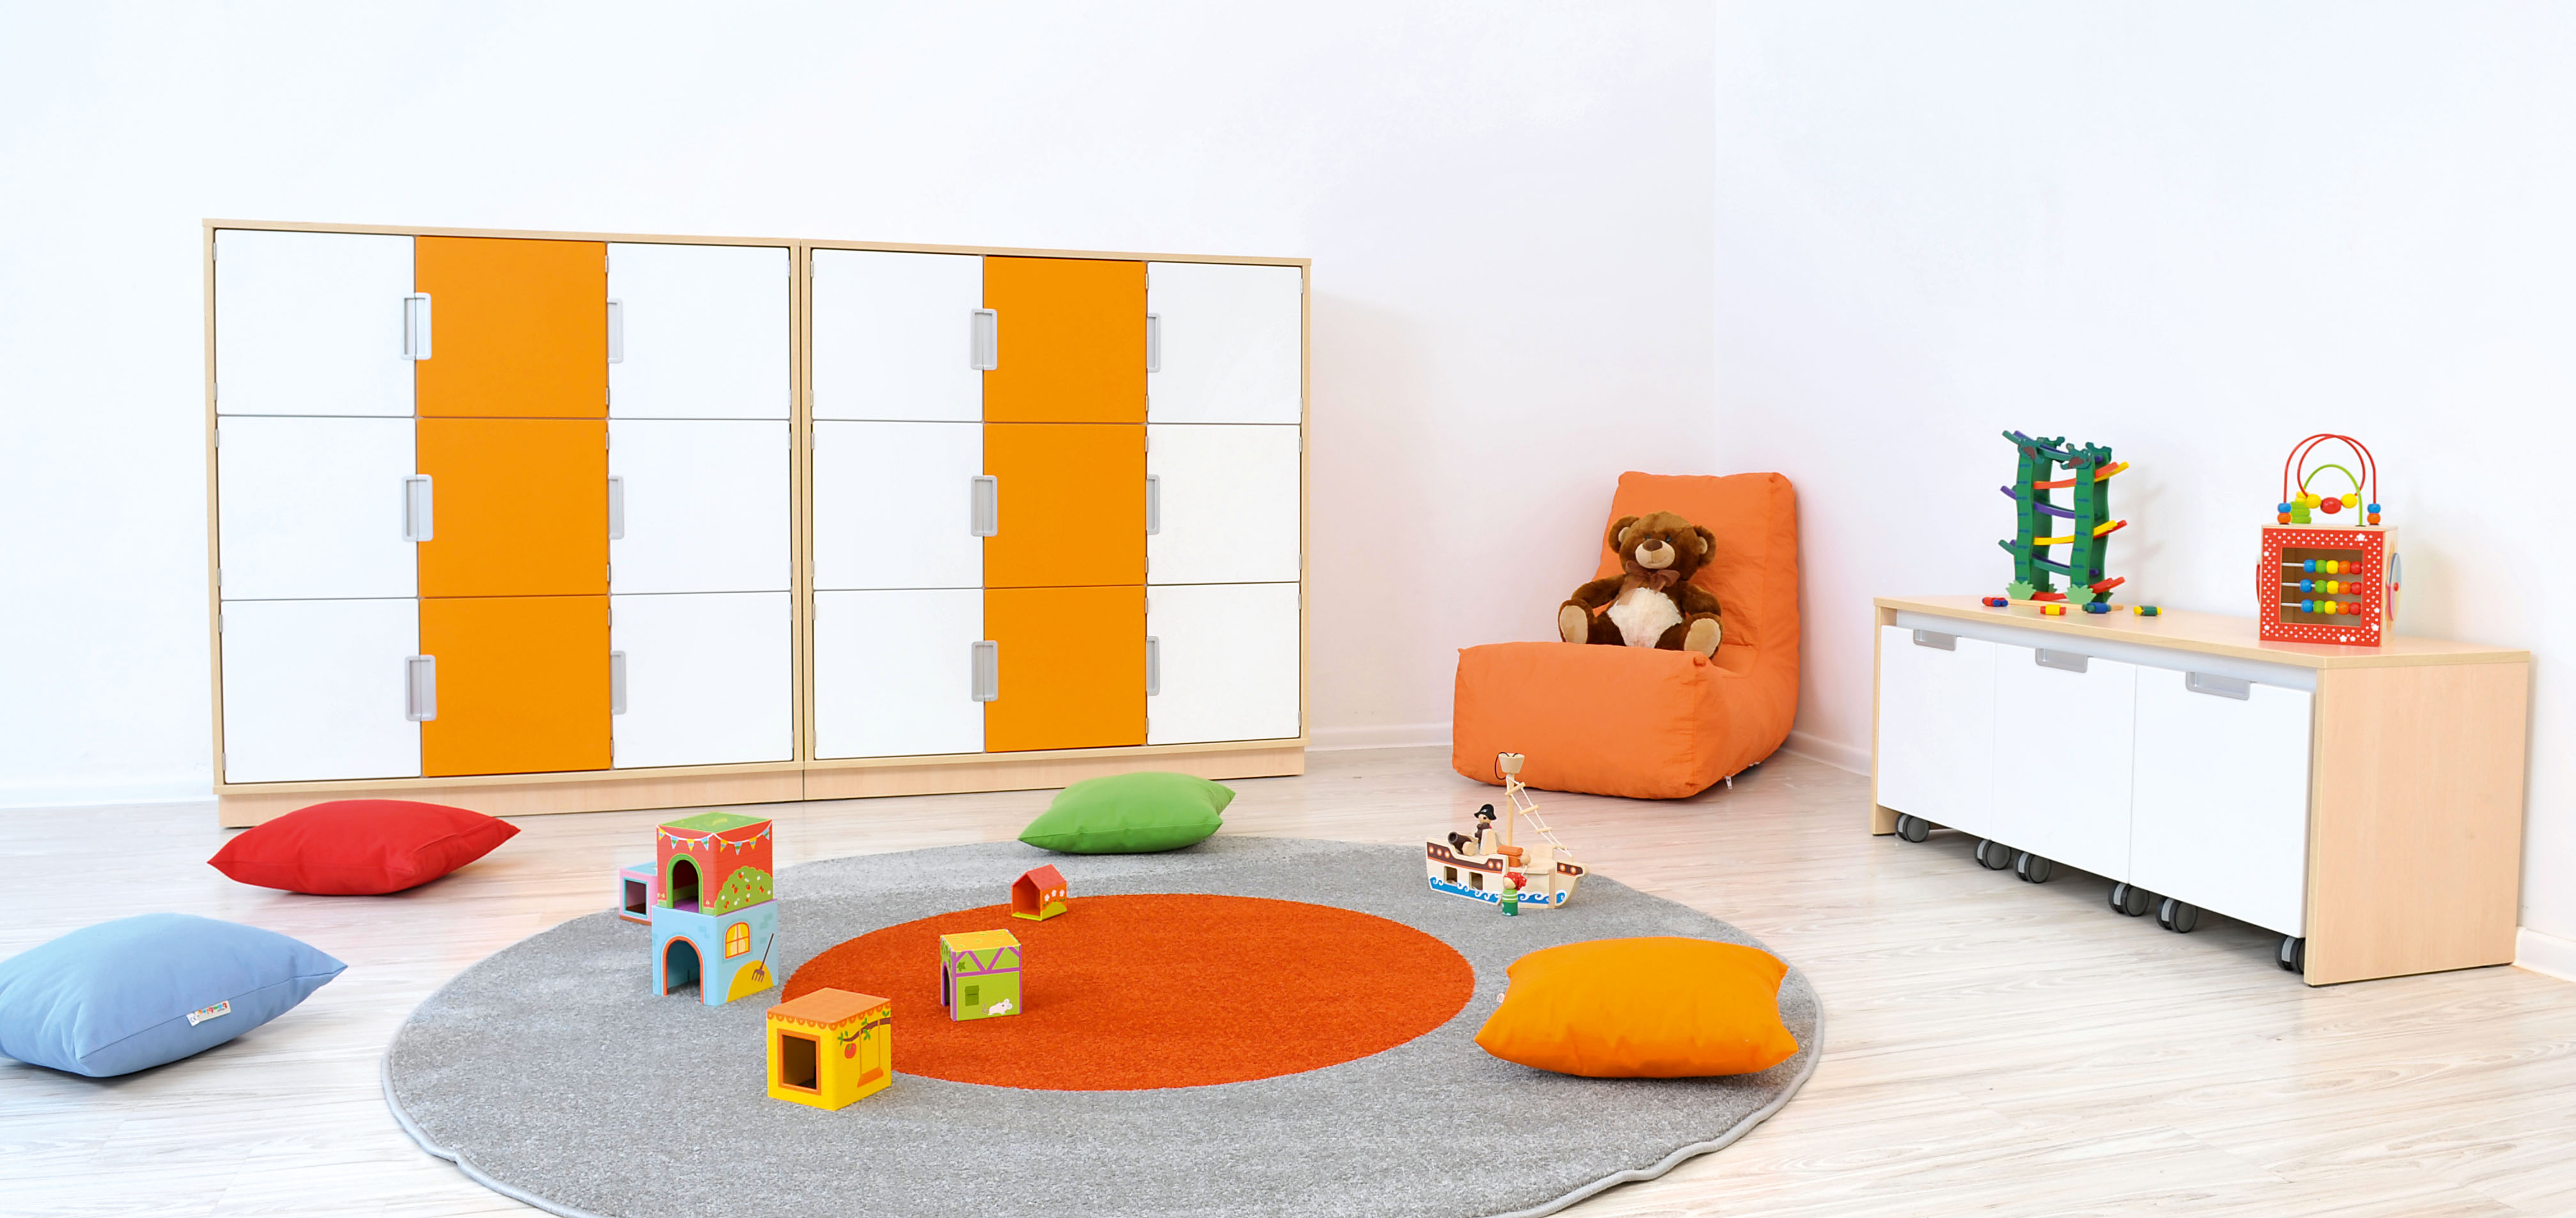 couleurs en maternelle orange